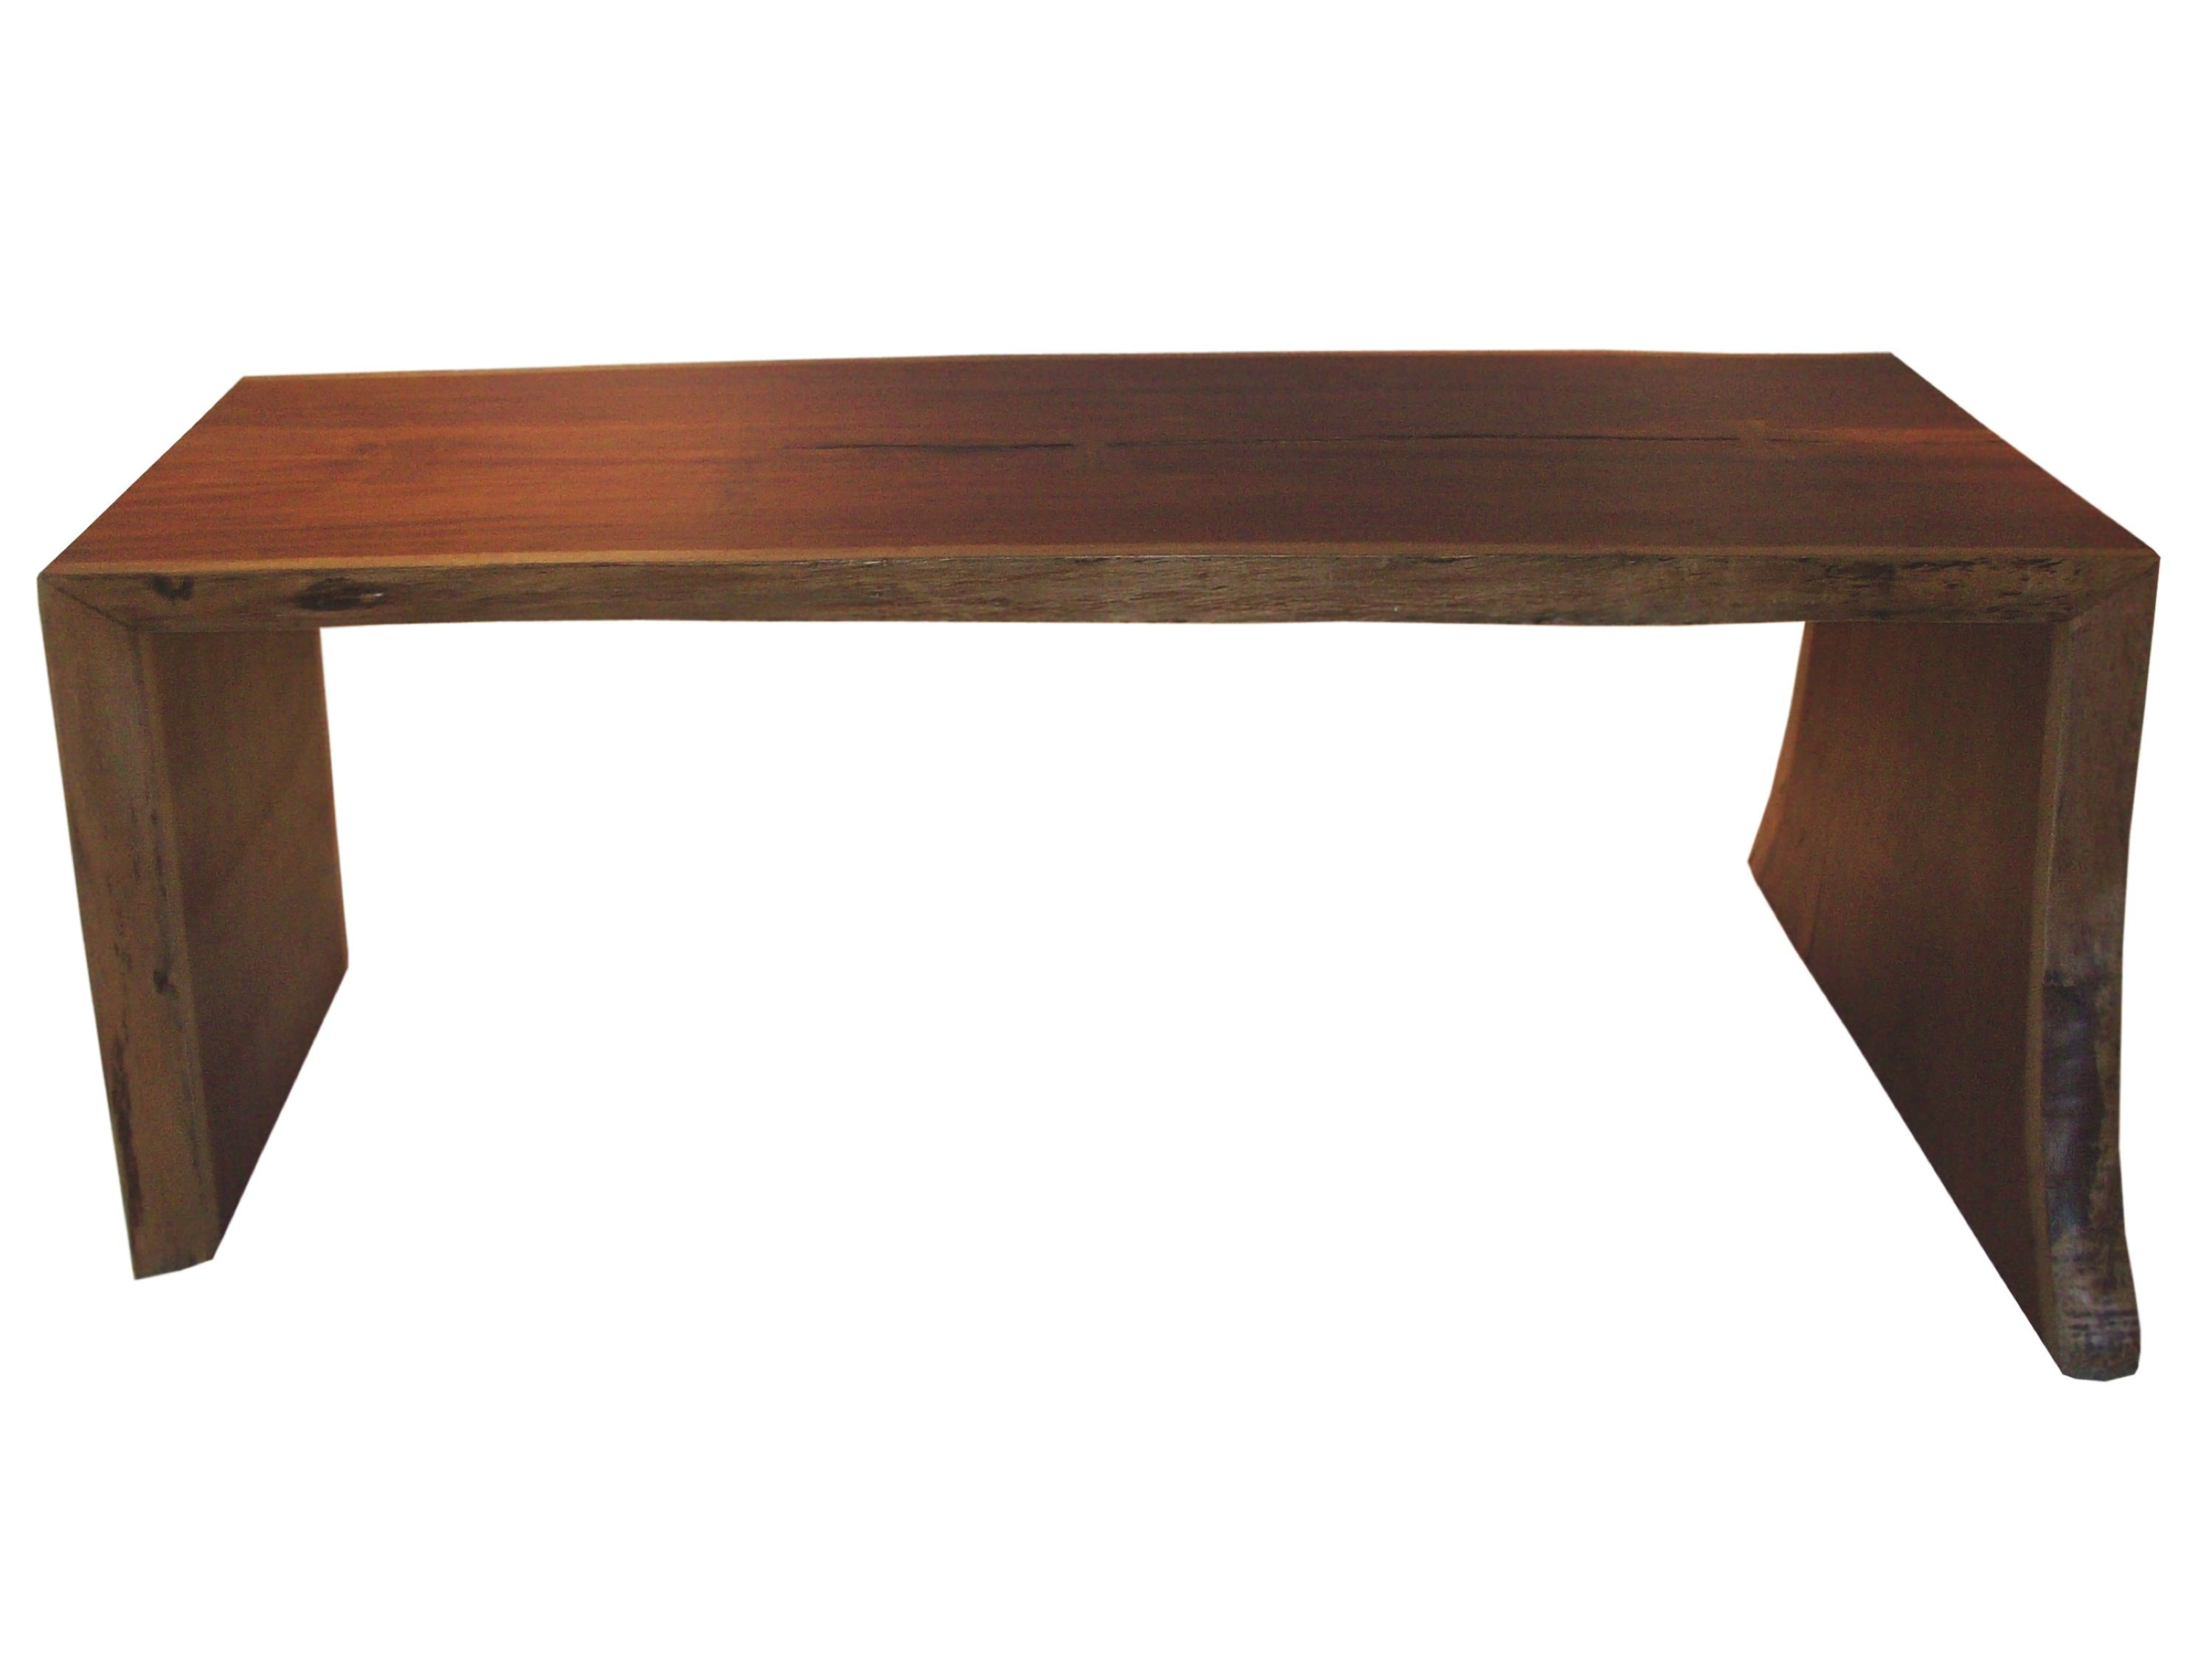 popular types and styles wood desks top sofa overstocka